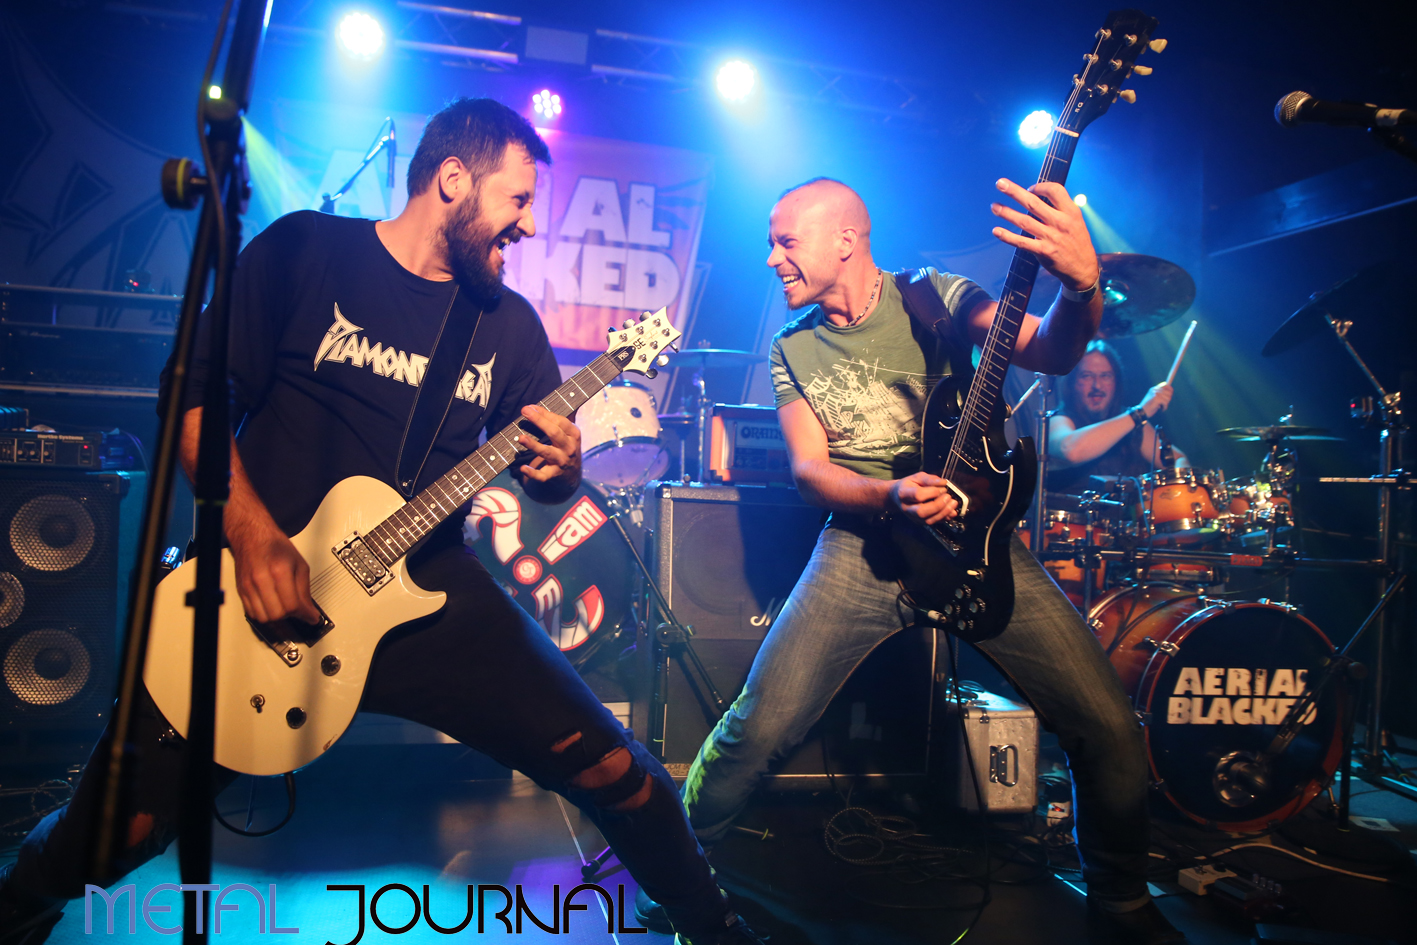 aerial blacked vitoria metal journal pic 2